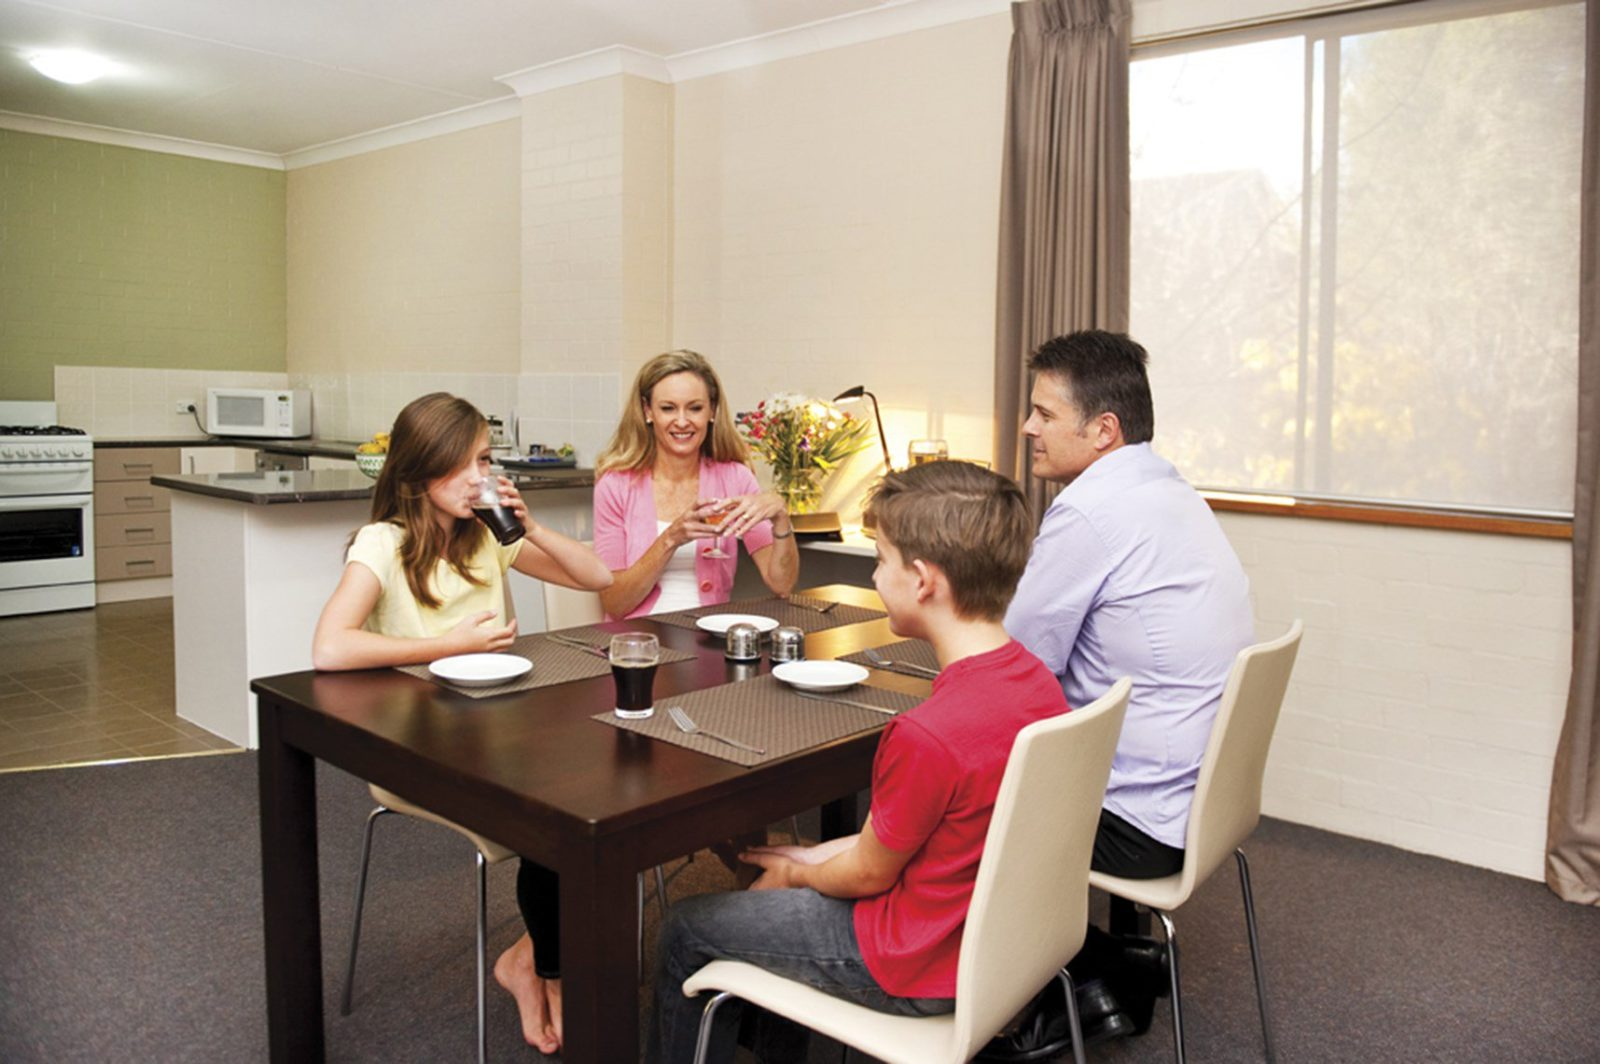 Family in the kitchen/dining area